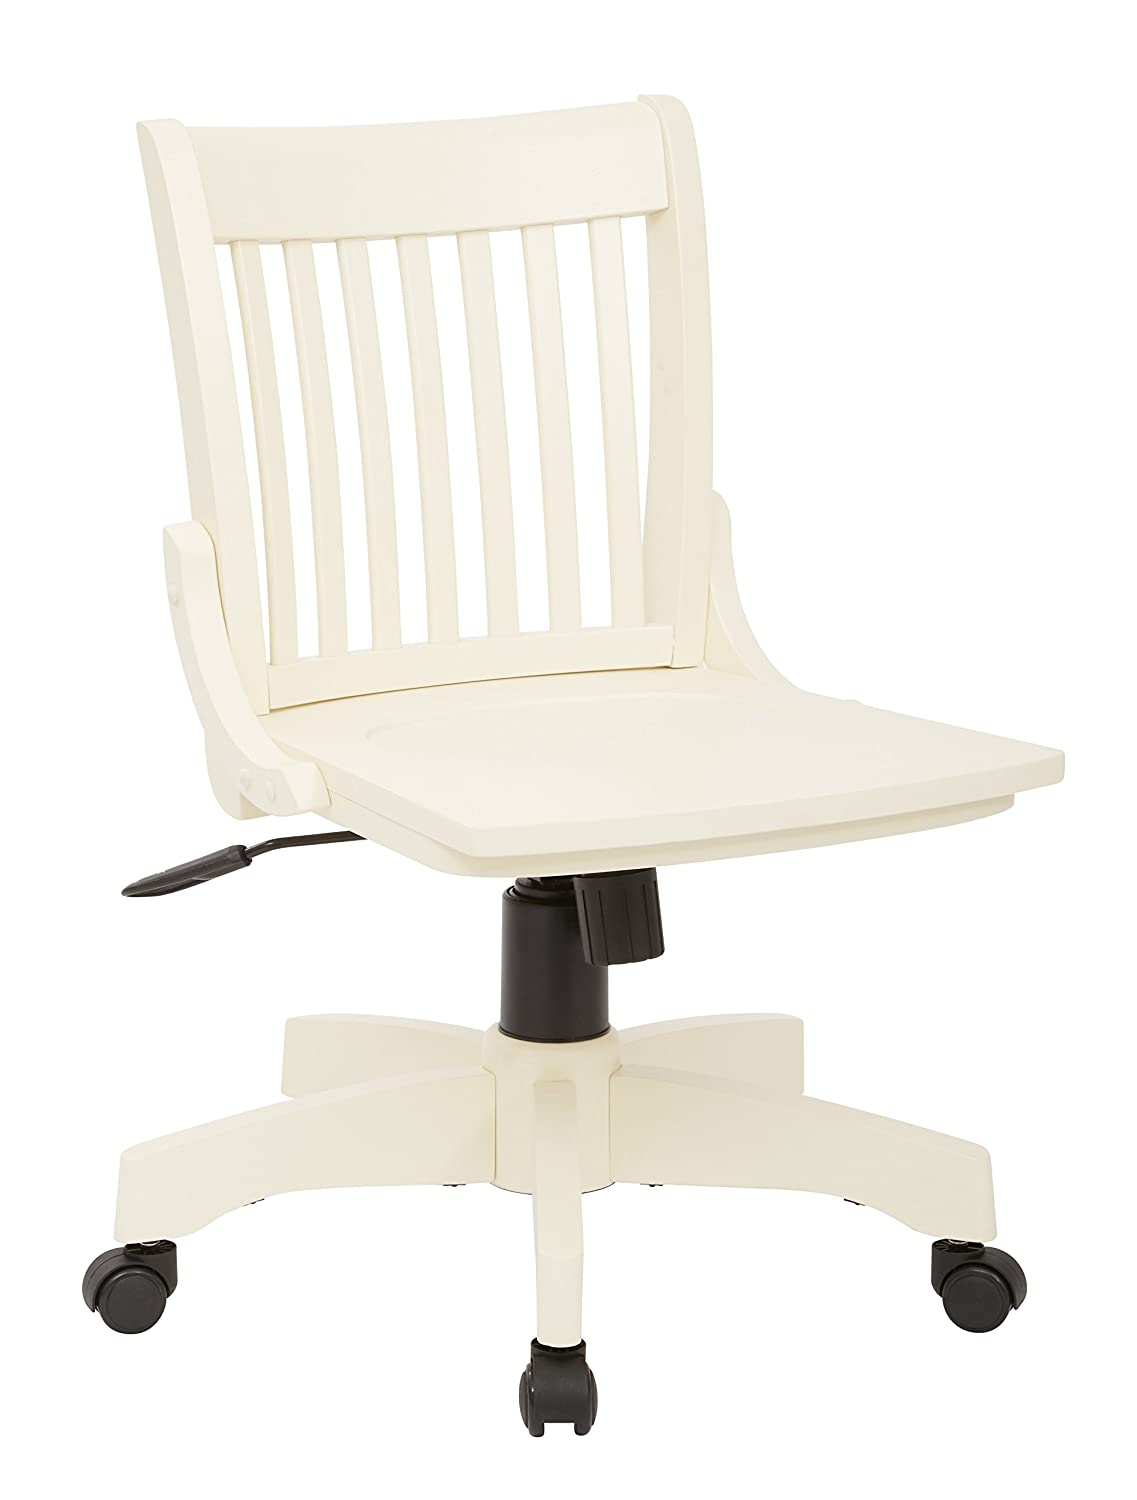 Armless bankers chair - Amazon Com Office Star Deluxe Armless Wood Bankers Desk Chair With Wood Seat Fruit Wood Kitchen Dining